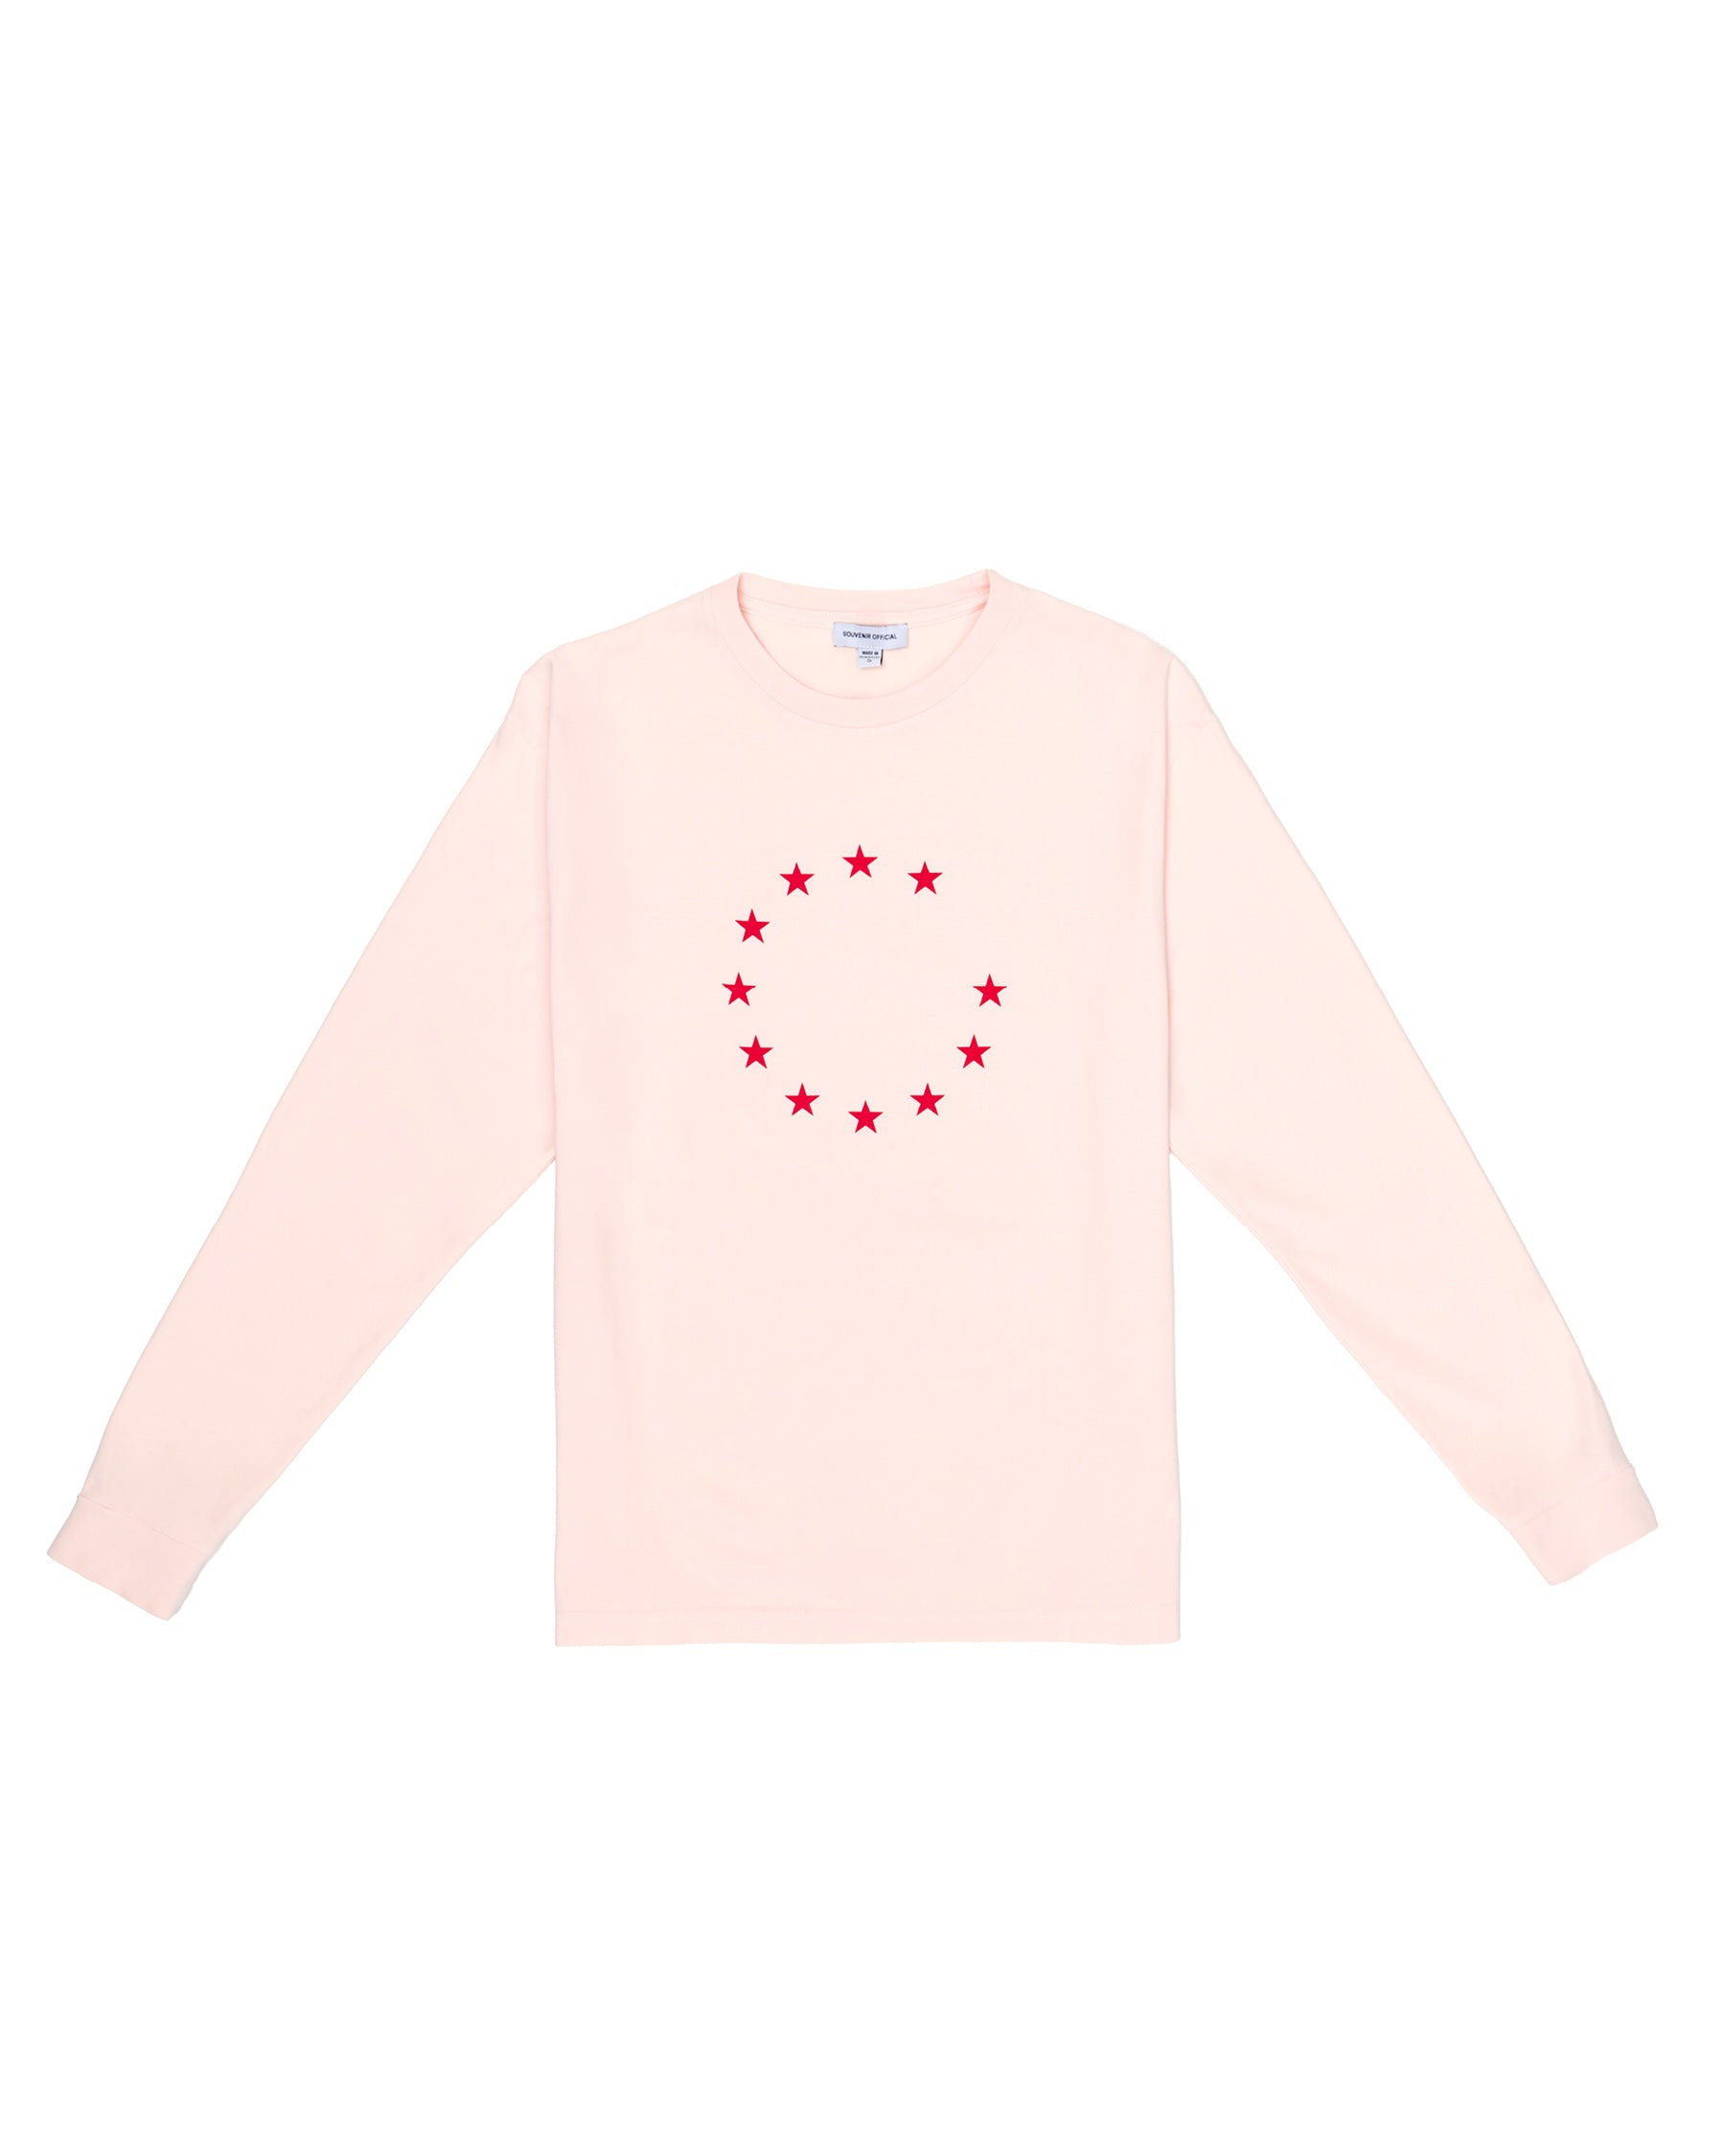 PROTECT PEACE LONGSLEEVE ROSE